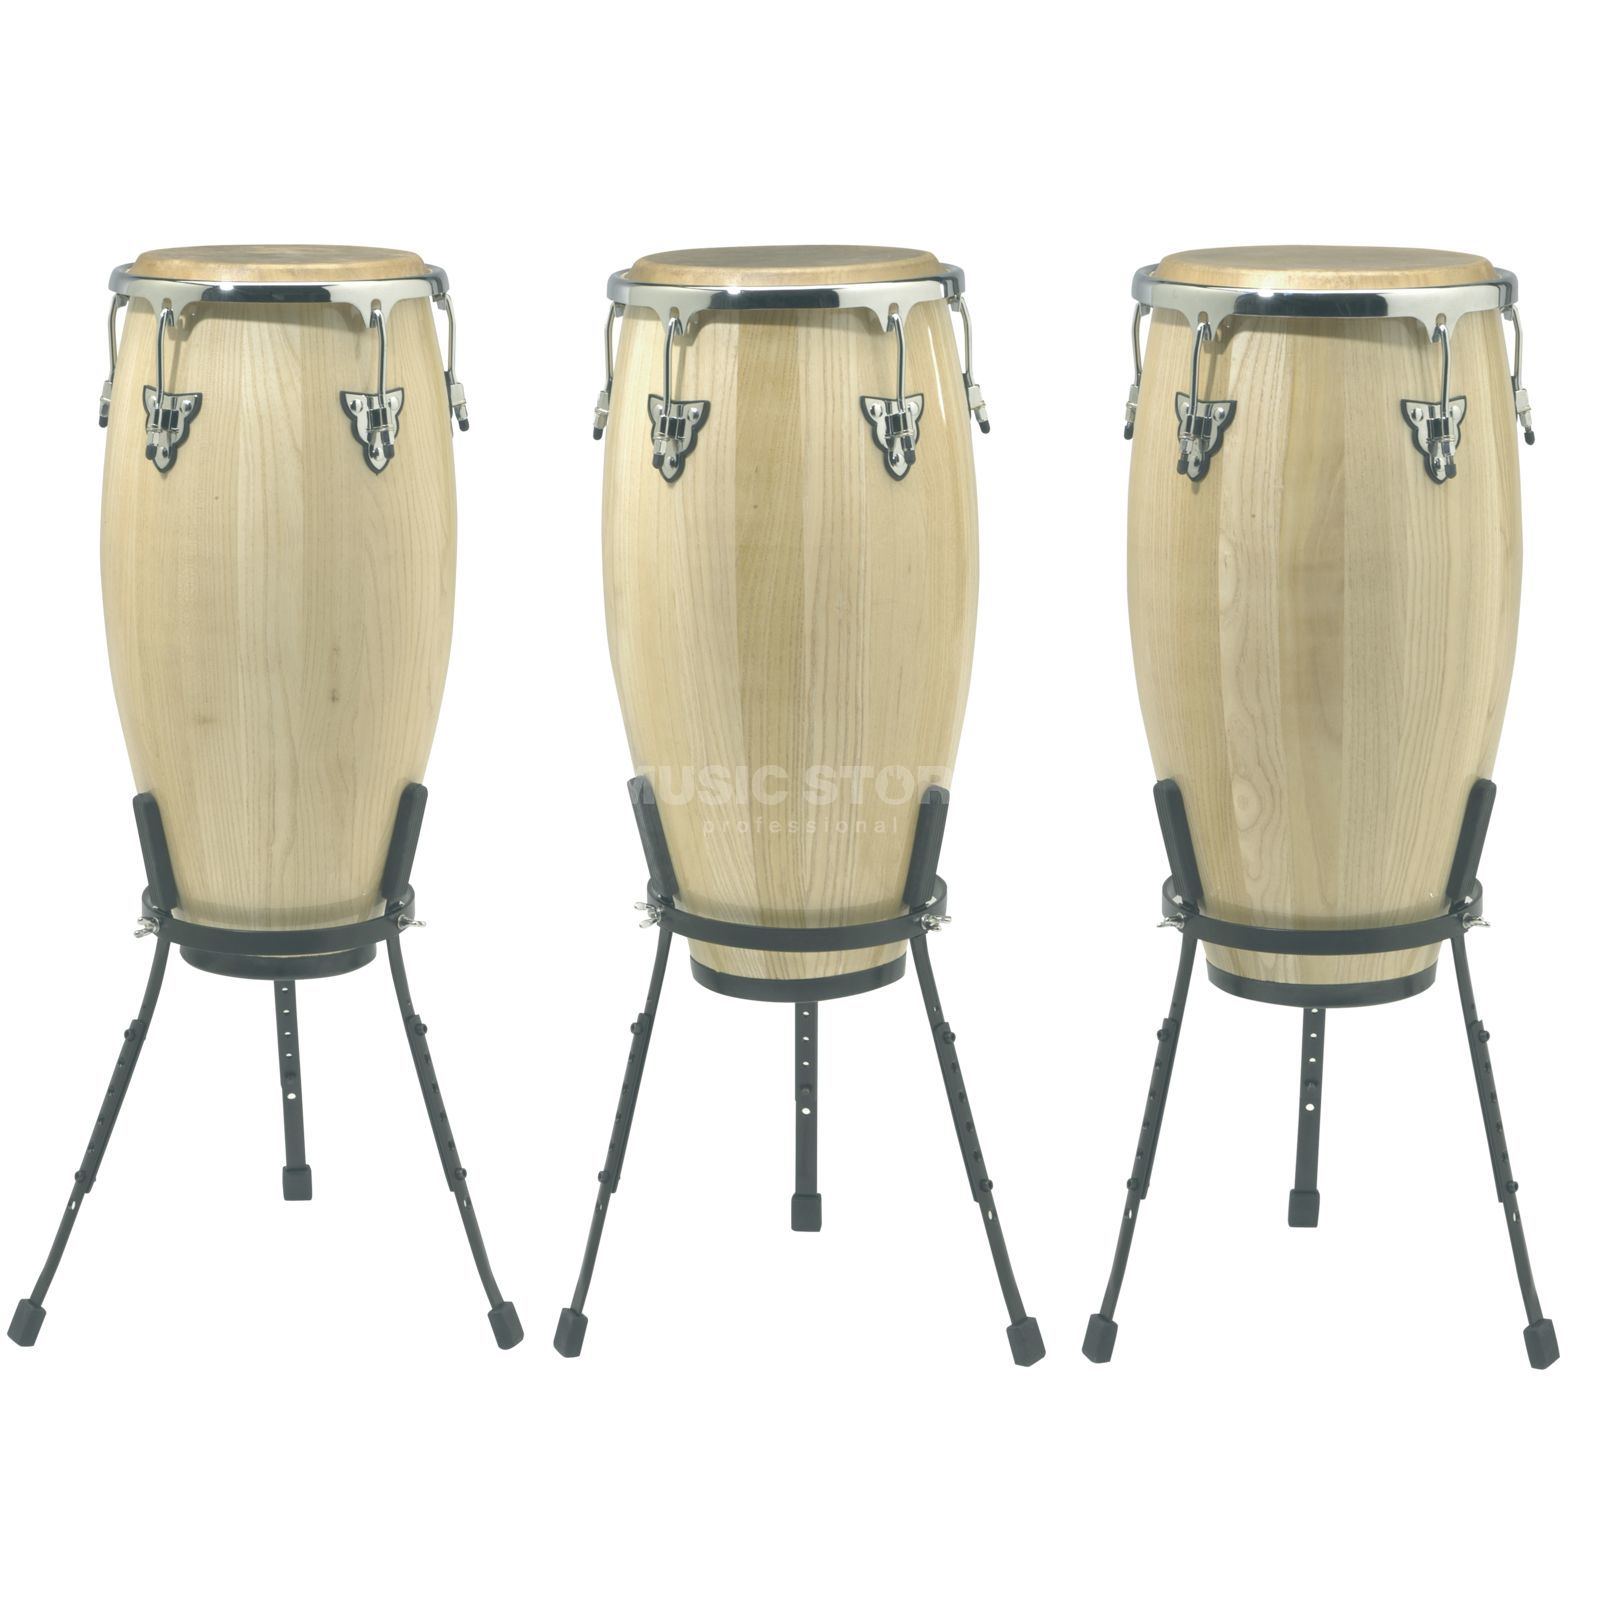 SONOR NHG Champion Conga - Set Produktbild